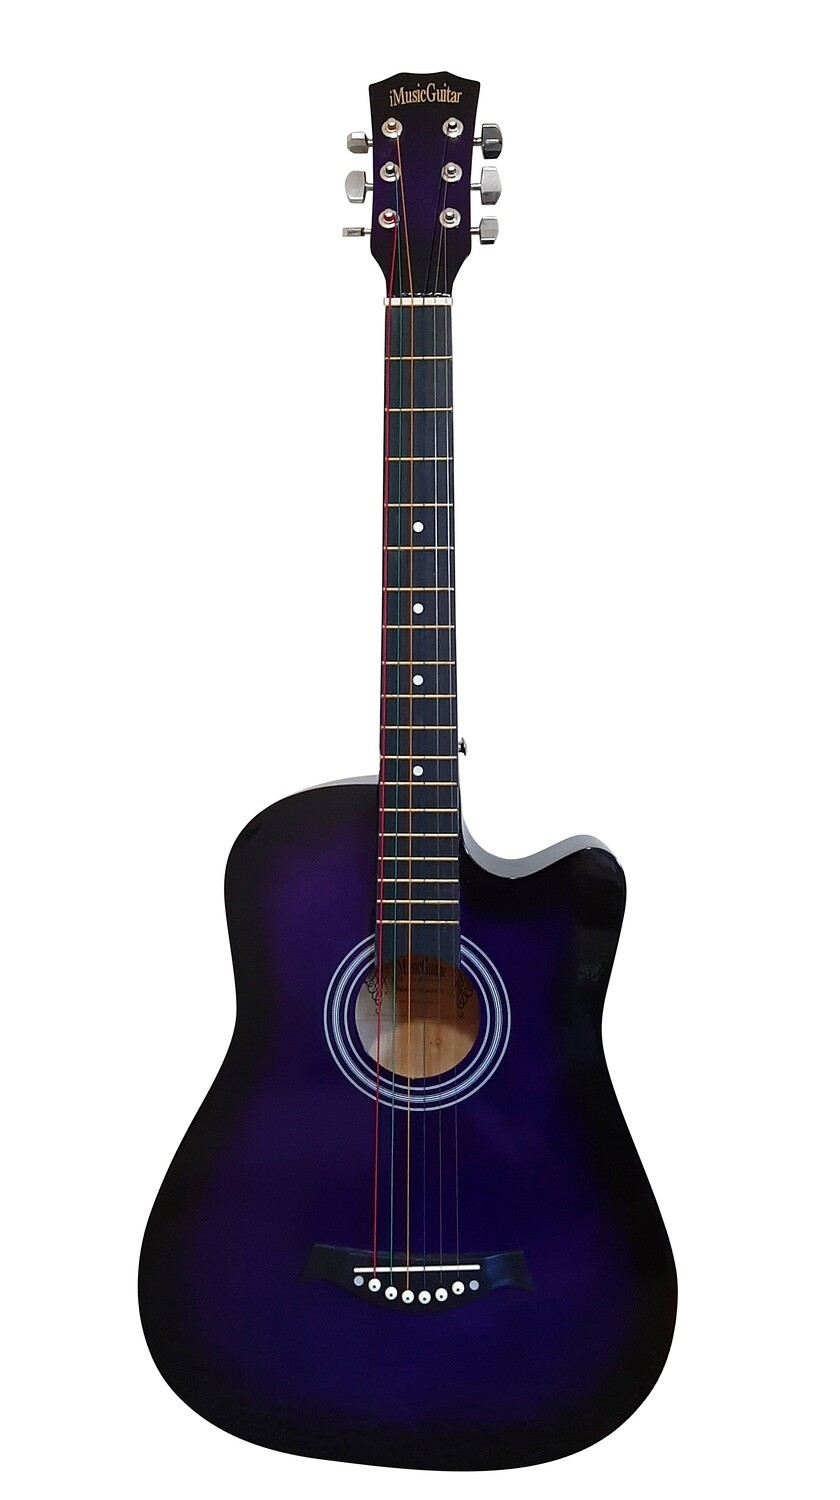 Acoustic Guitar 38 inch for Children Purple iMusic672